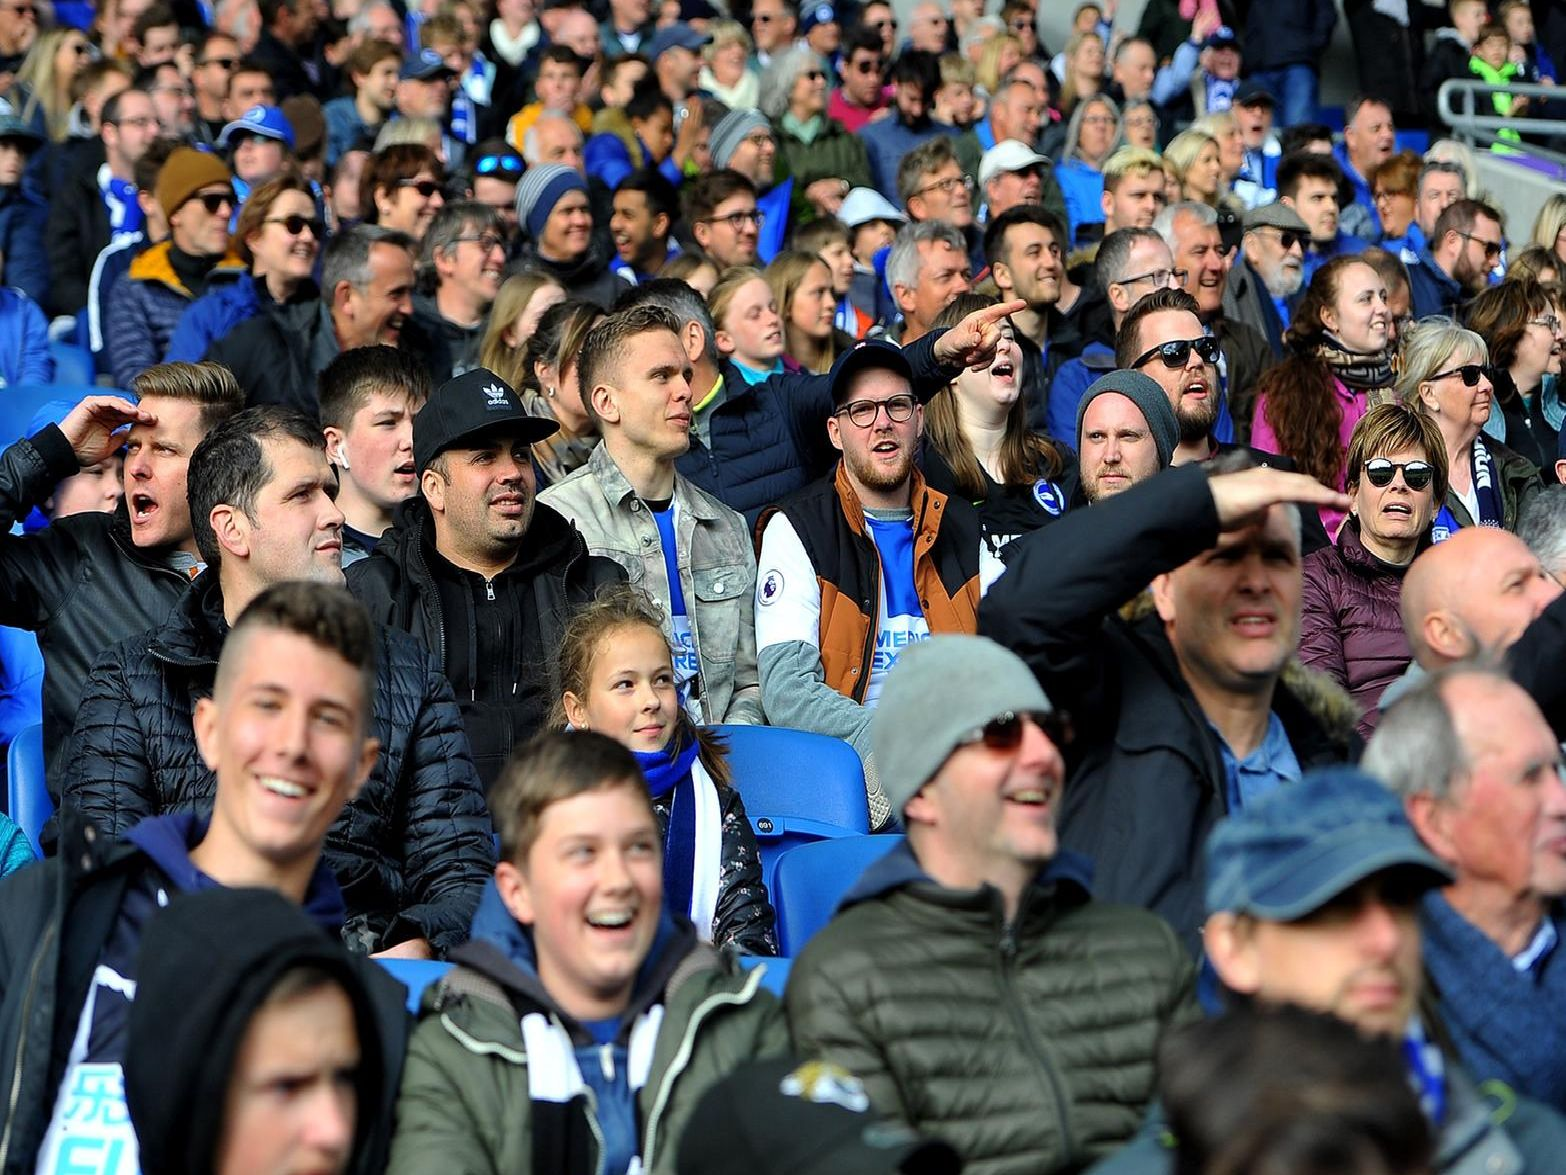 Brighton fans pictured at the game